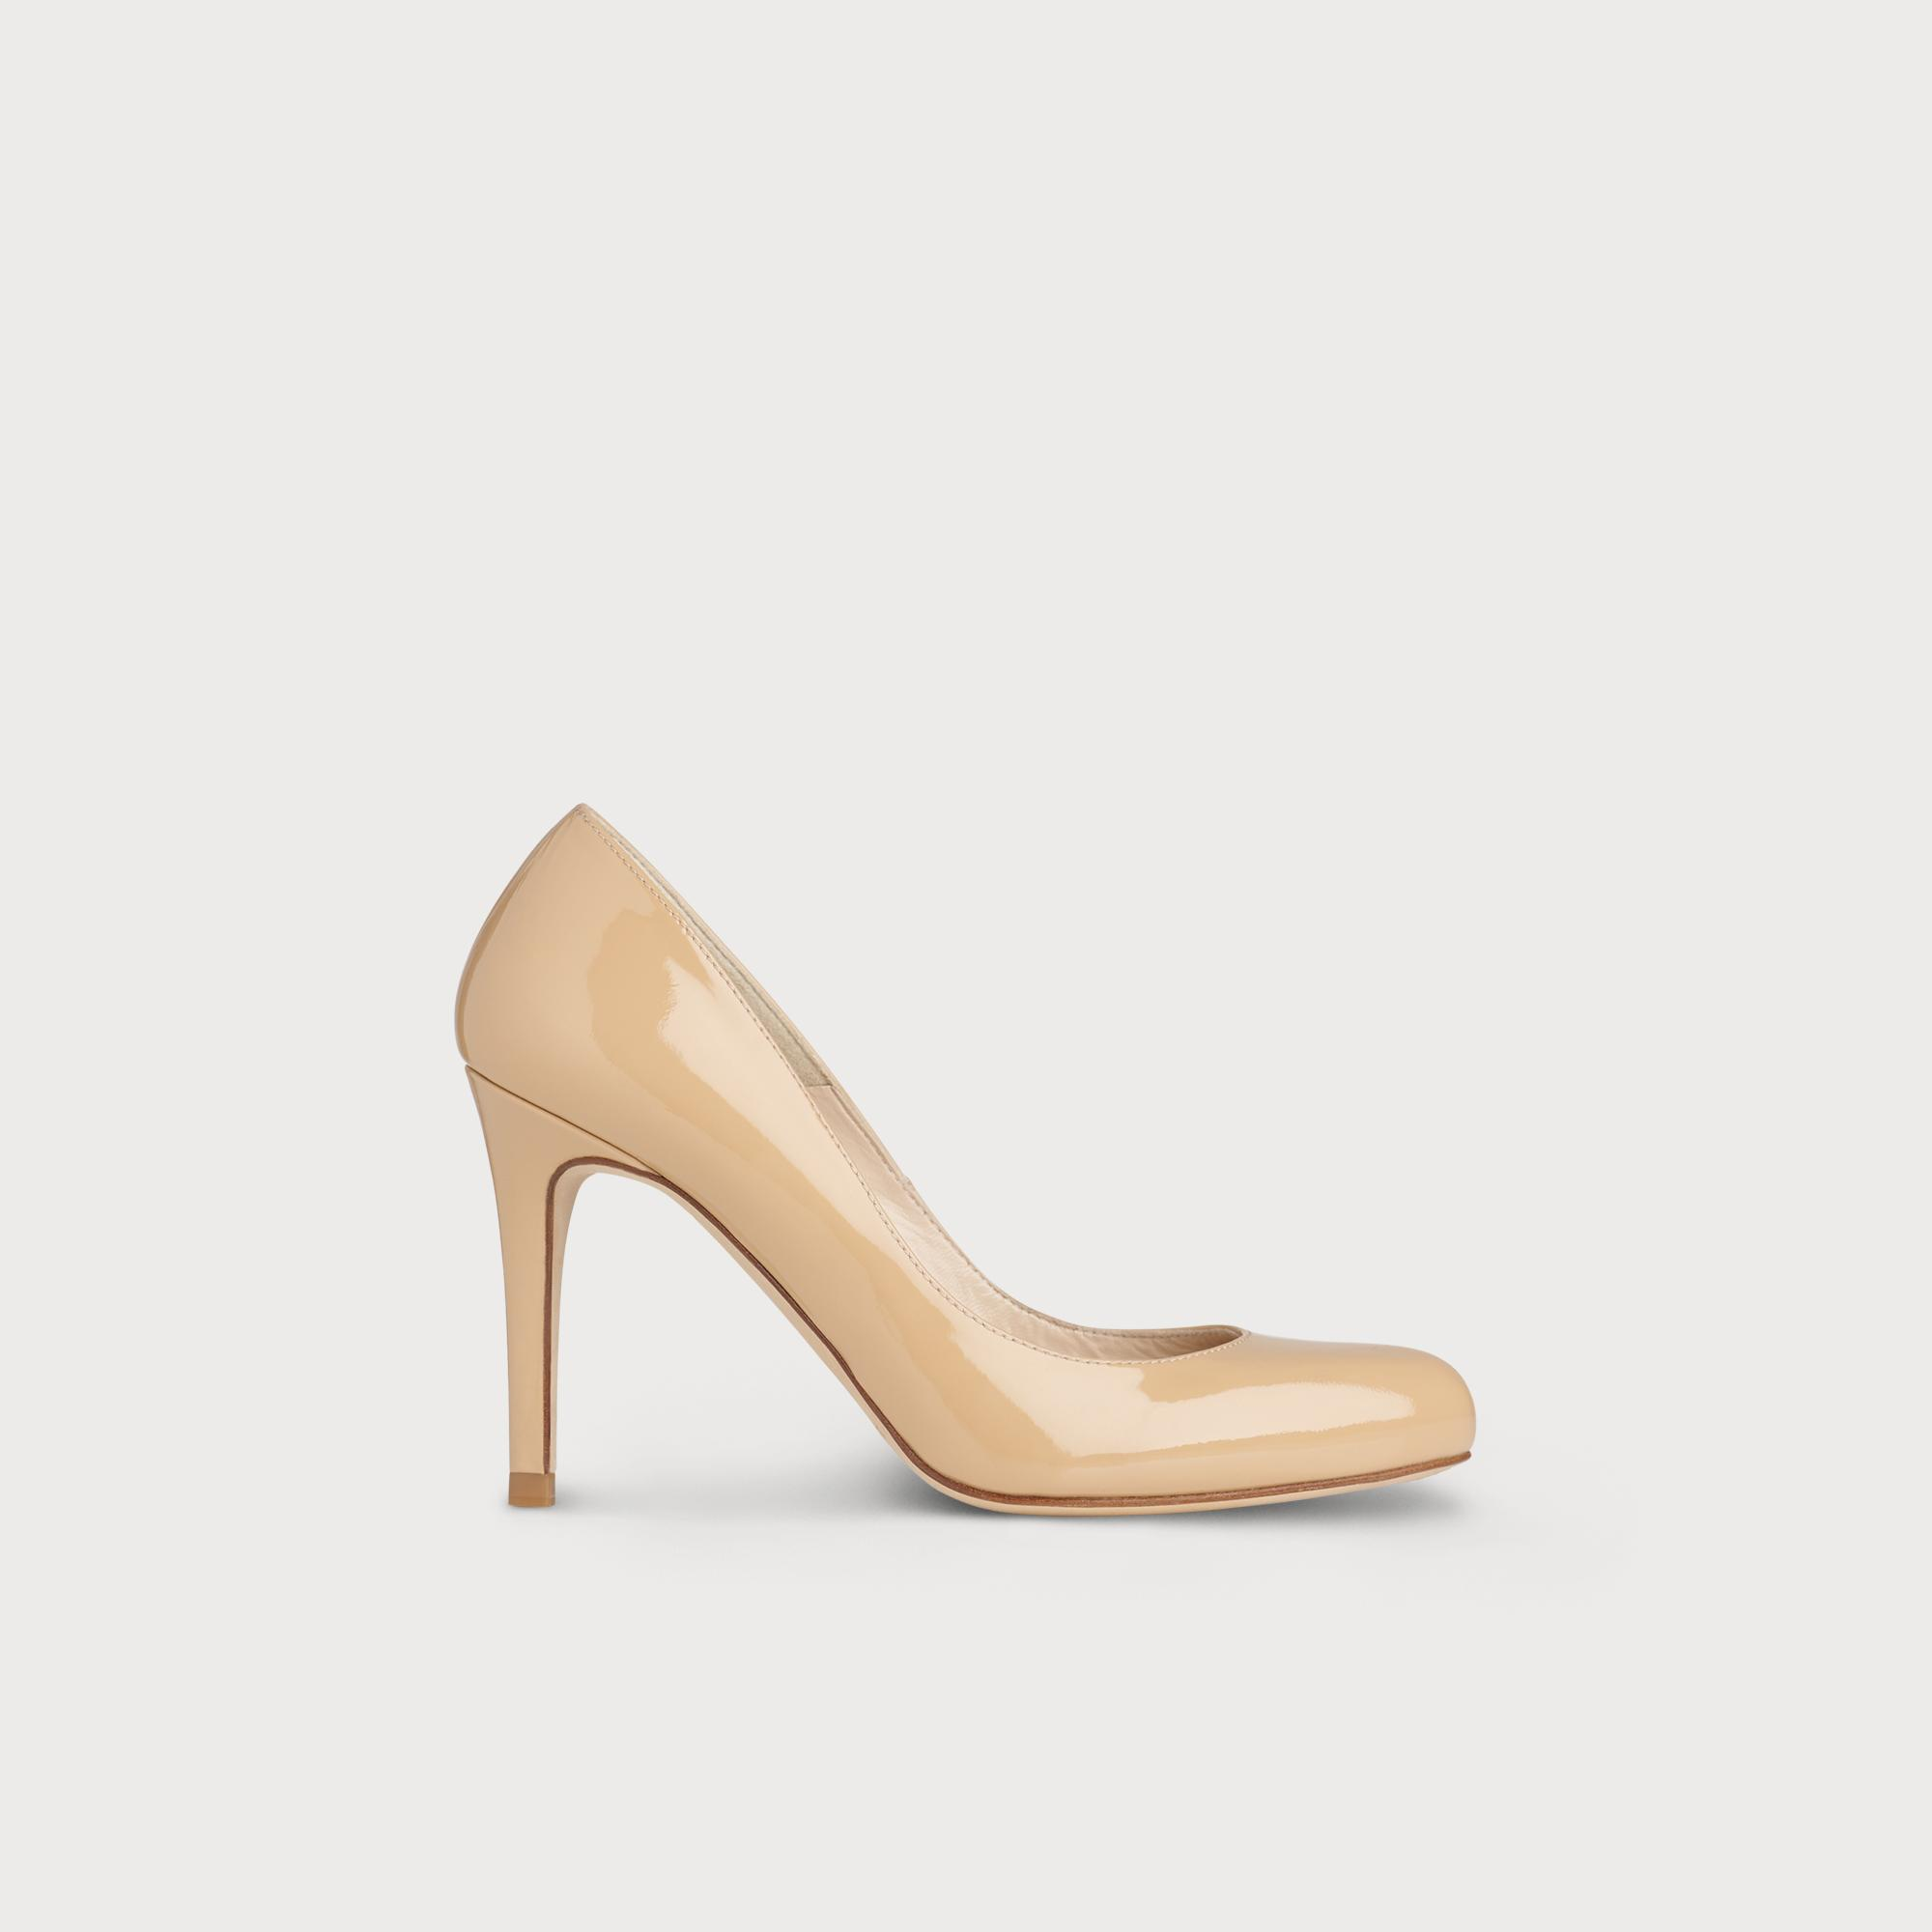 Stila Trench Patent Leather Heel